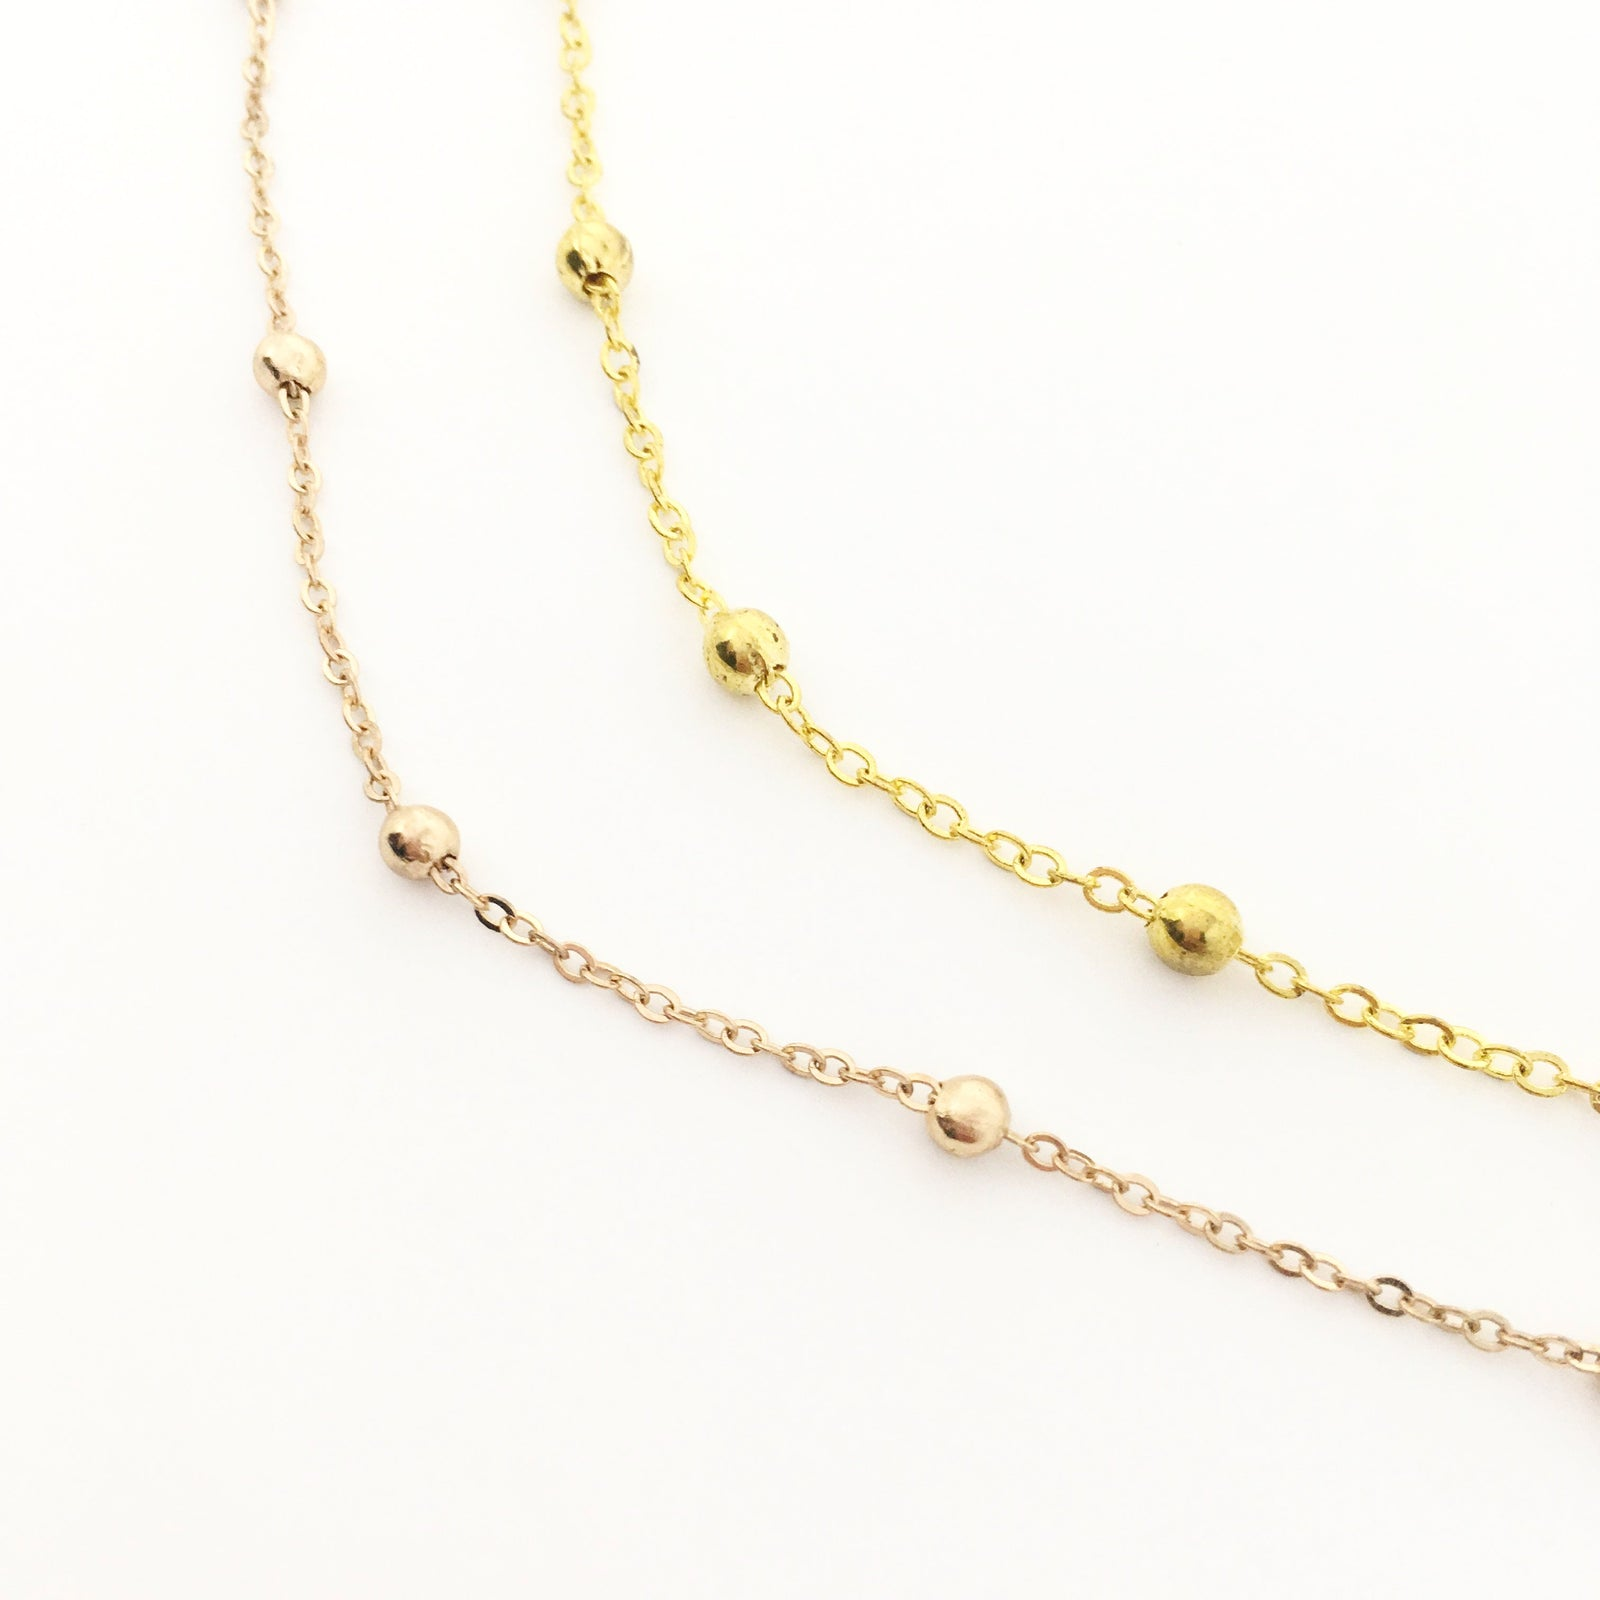 BEADED CHAIN NECKLACES | GOLD & ROSE GOLD